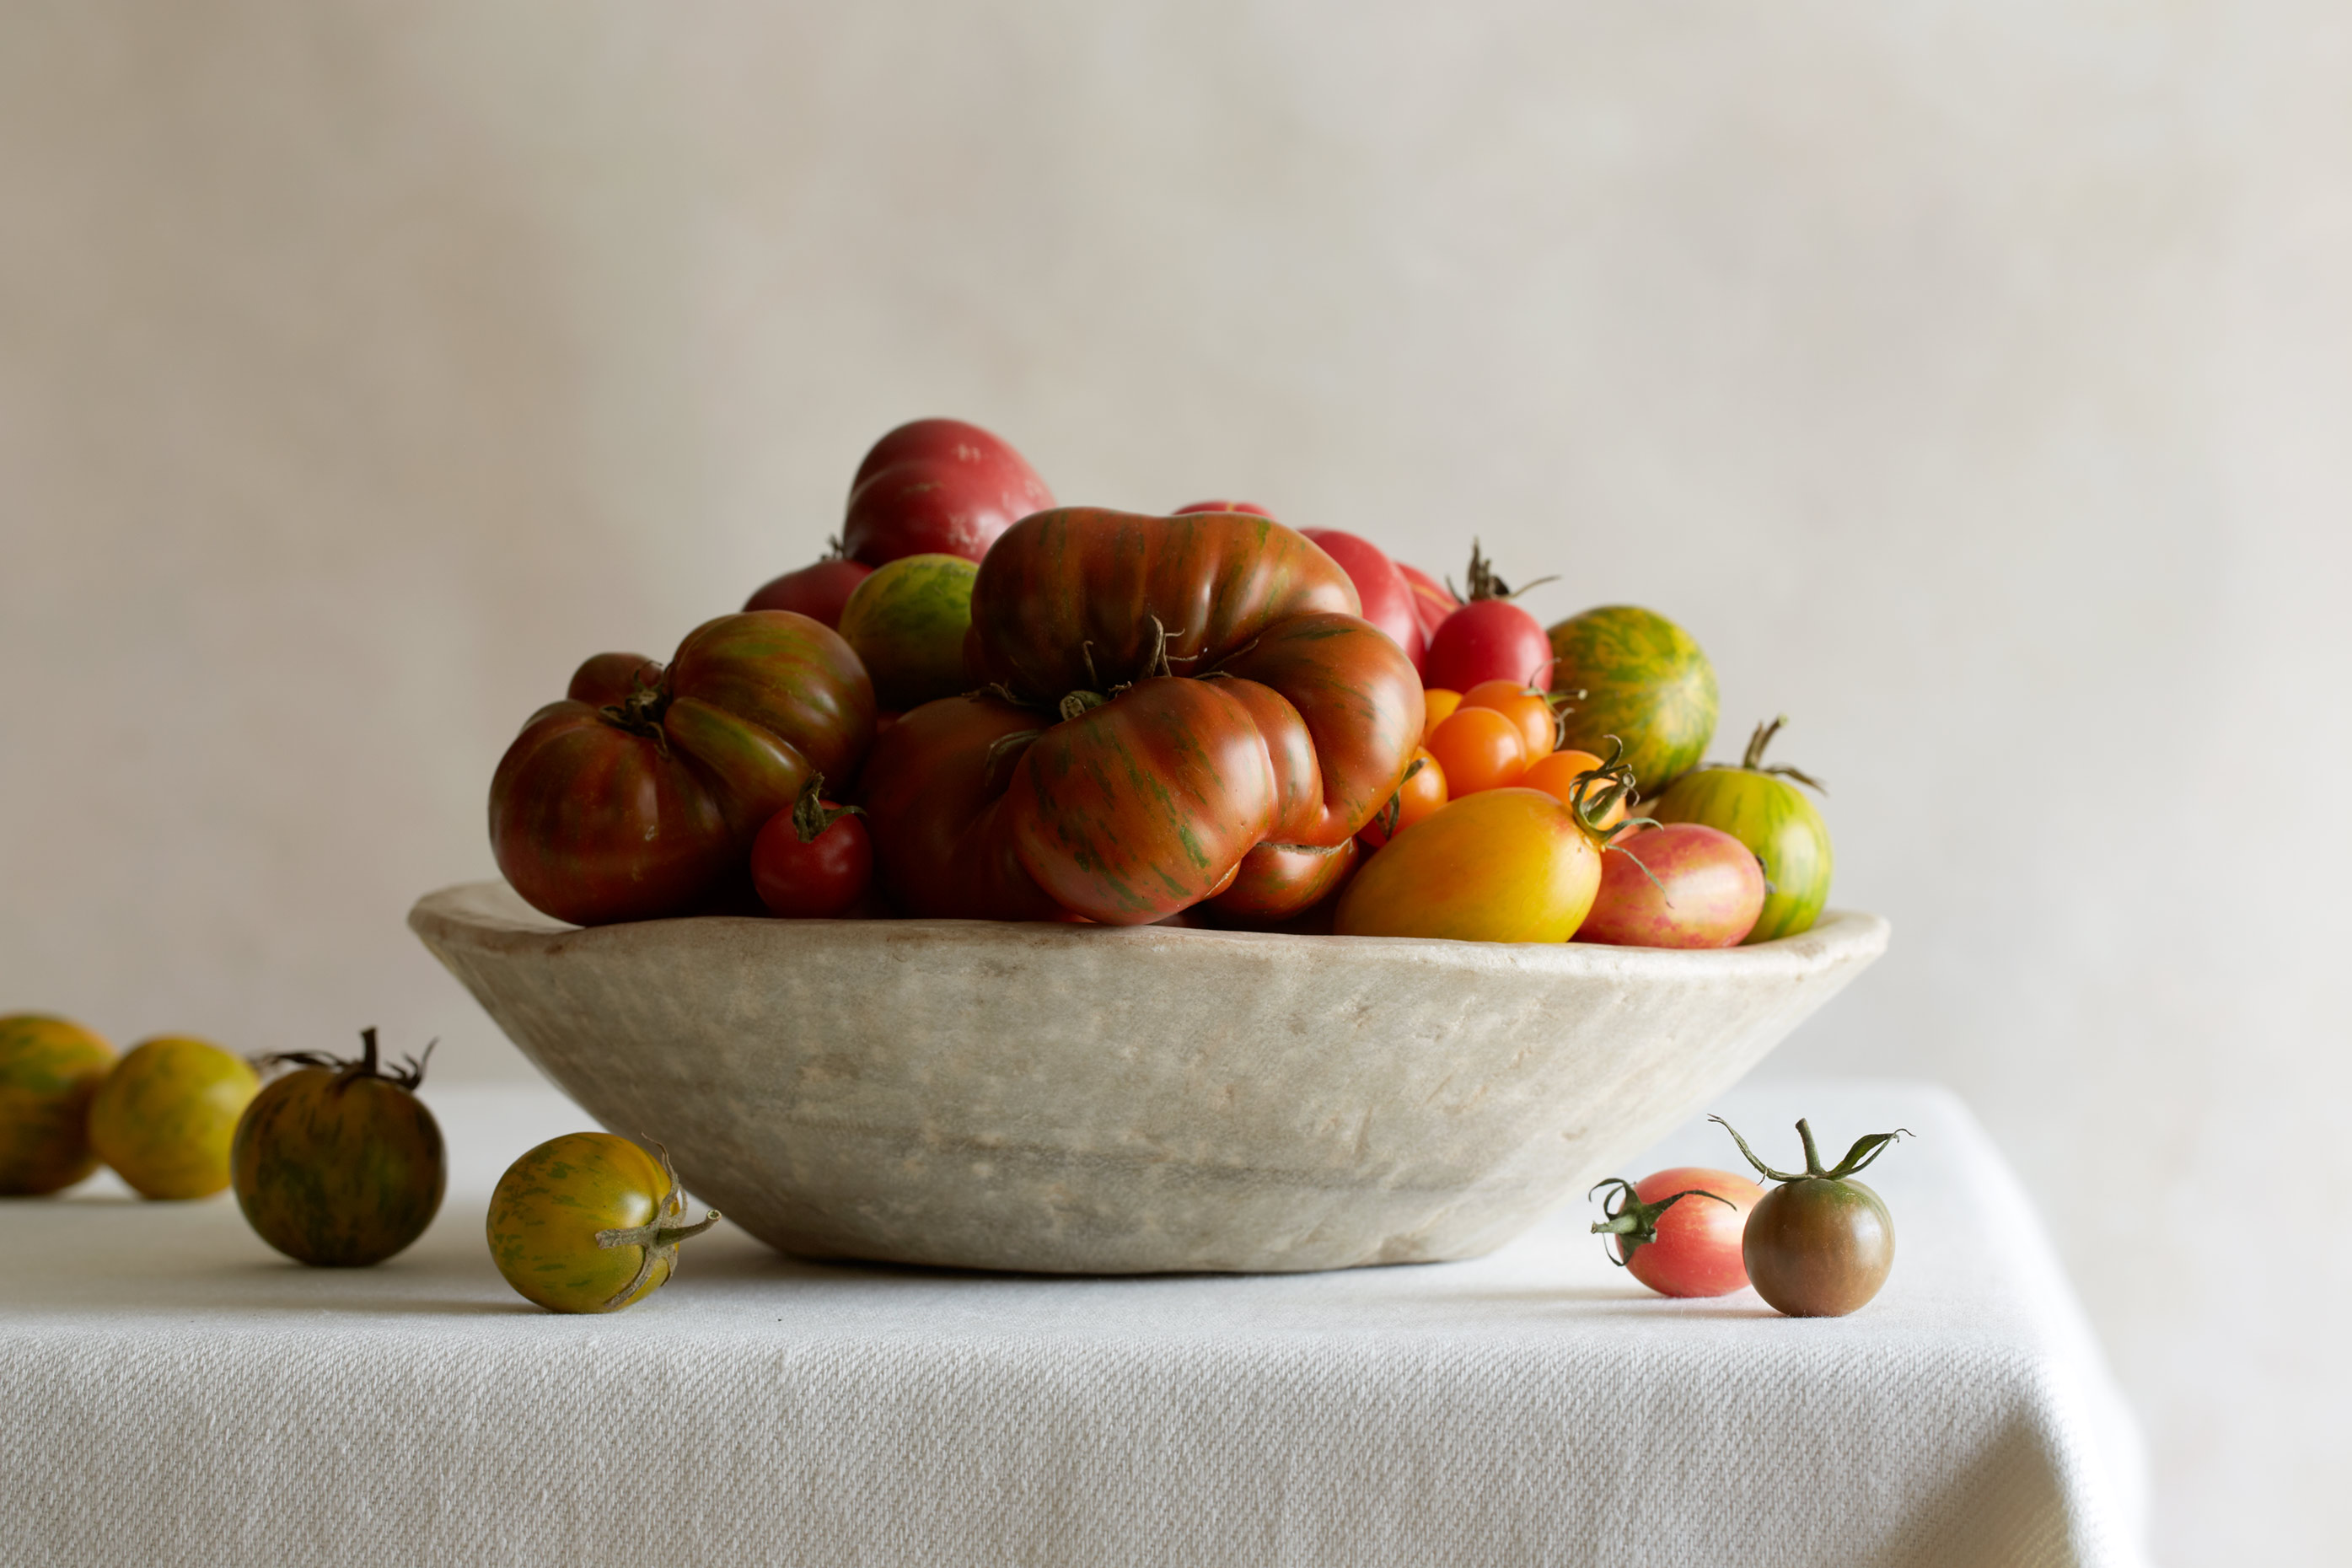 heirloom_tomato_still_life_food_photographer